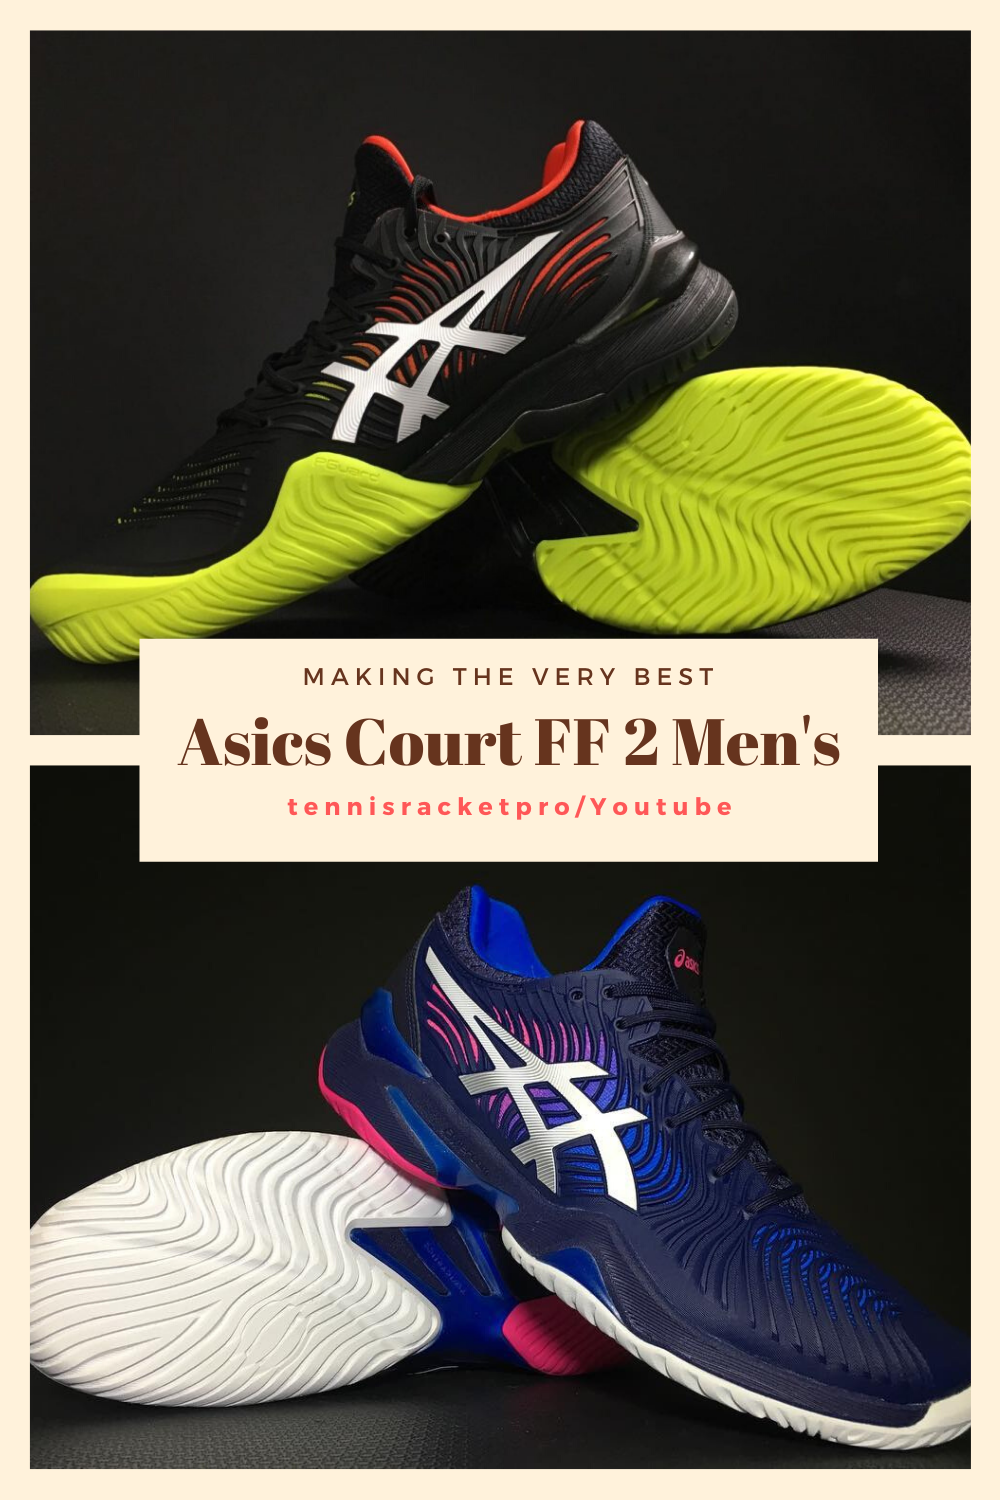 Asics Court Ff 2 Men S Global Tennis Shoe Review Novak Djokovic Tennis Shoe Novak Djokovic Wallpaper Novakndjoko In 2020 With Images Mens Tennis Shoes Tennis Clothes Tennis Shoes